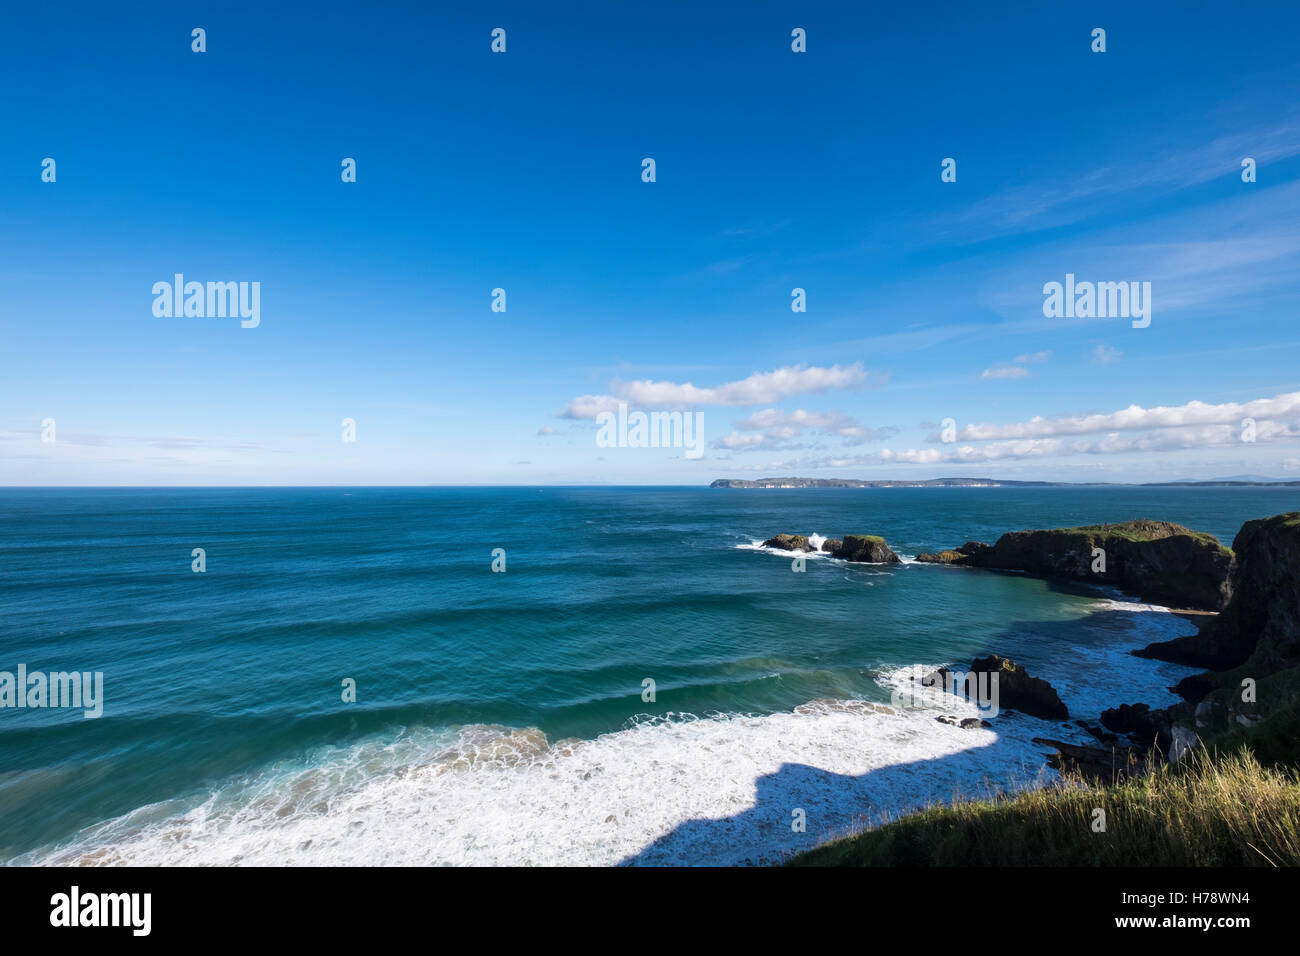 North Antrim coastline looking towards Scotland at Carric a Rede, Ireland - Stock Image